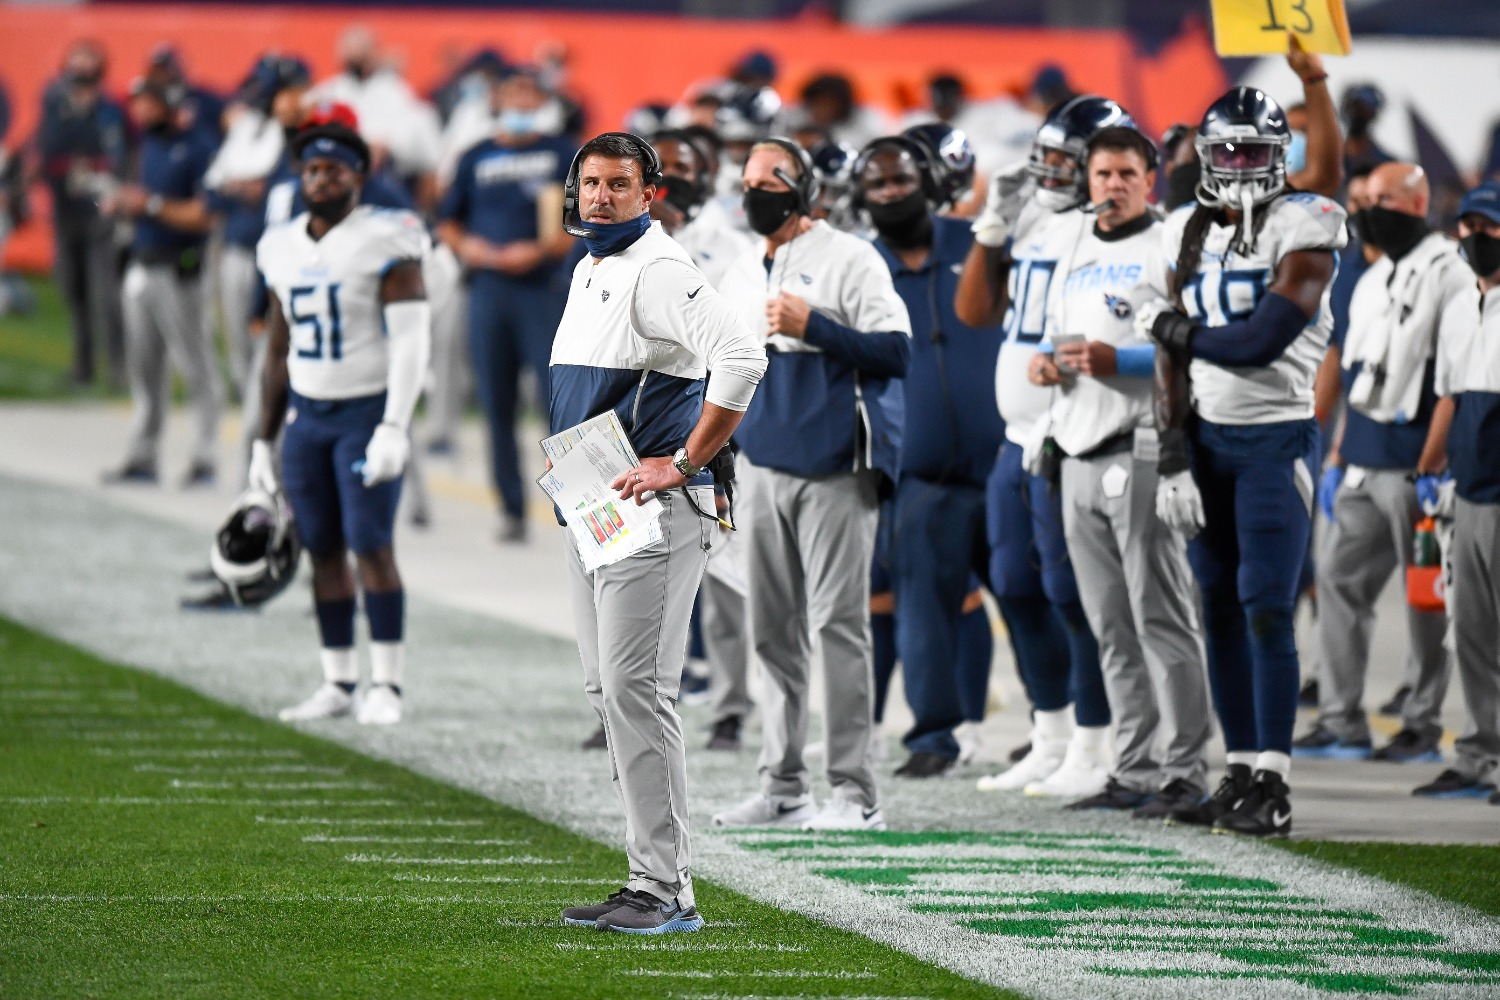 The Titans' COVID-19 Crisis Just Forced the NFL to Consider an Unprecedented Change